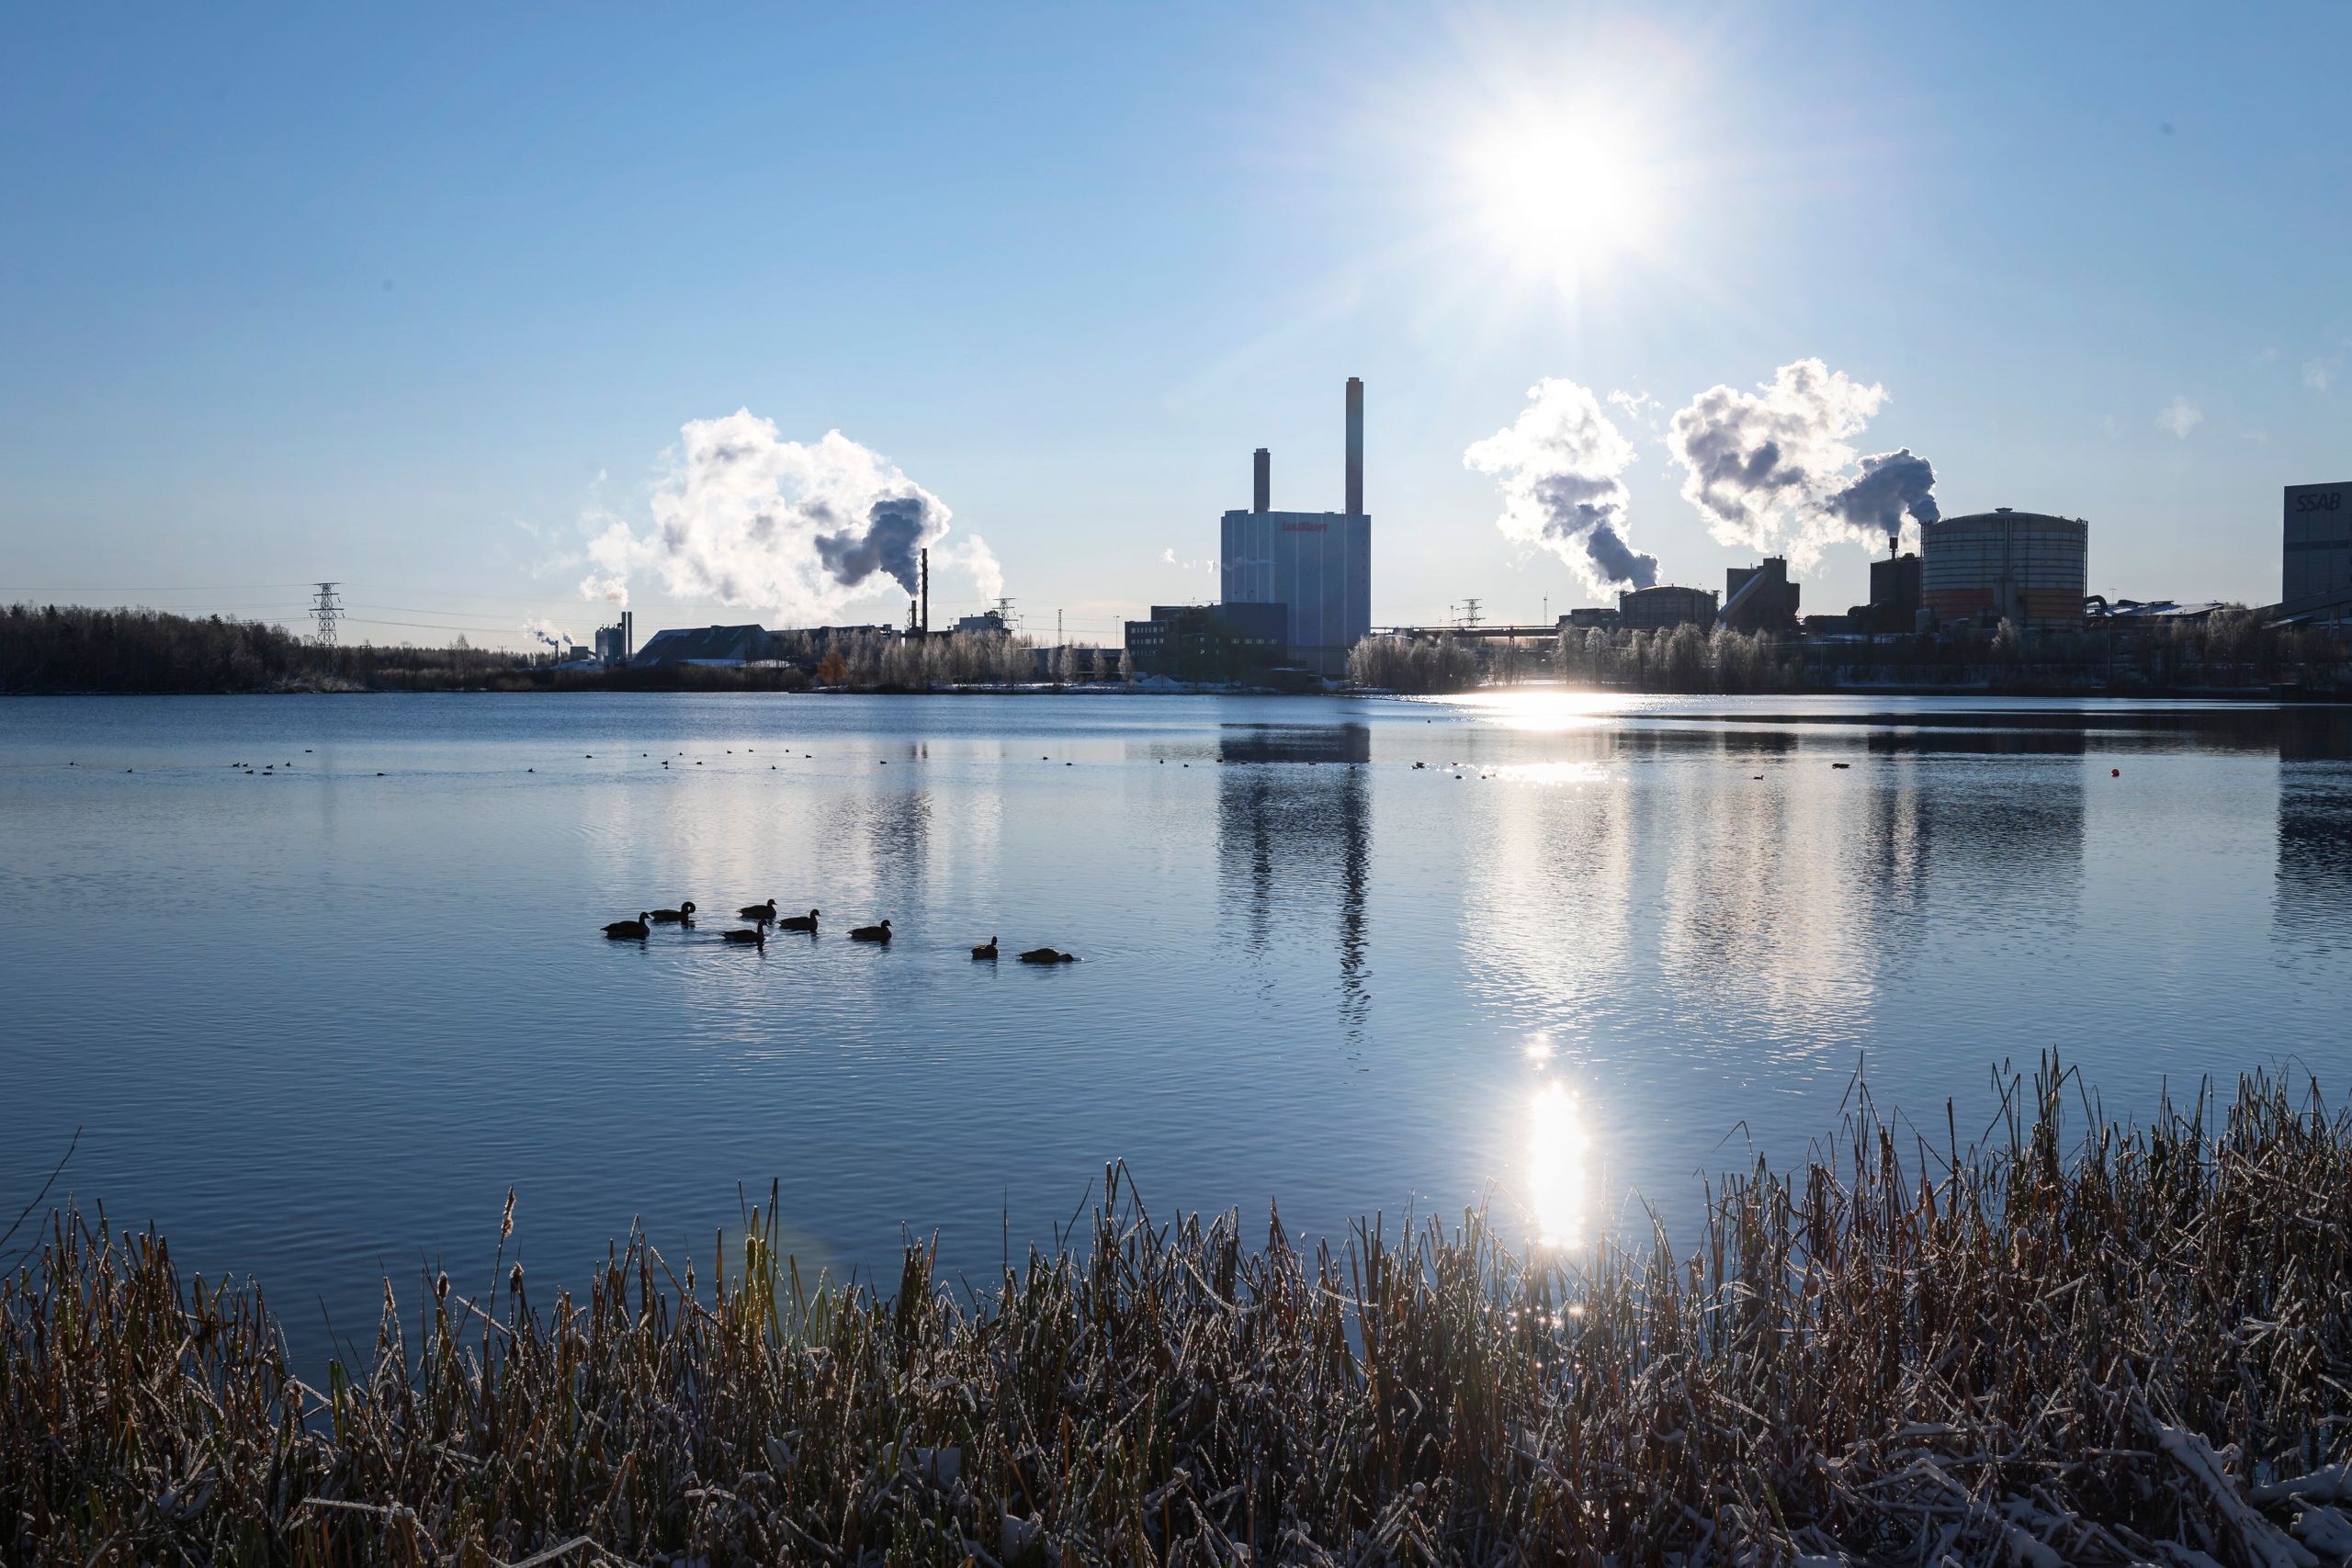 A view of SSAB's industrial zone. Luleå is located in an archipelago and surrounded by forests.